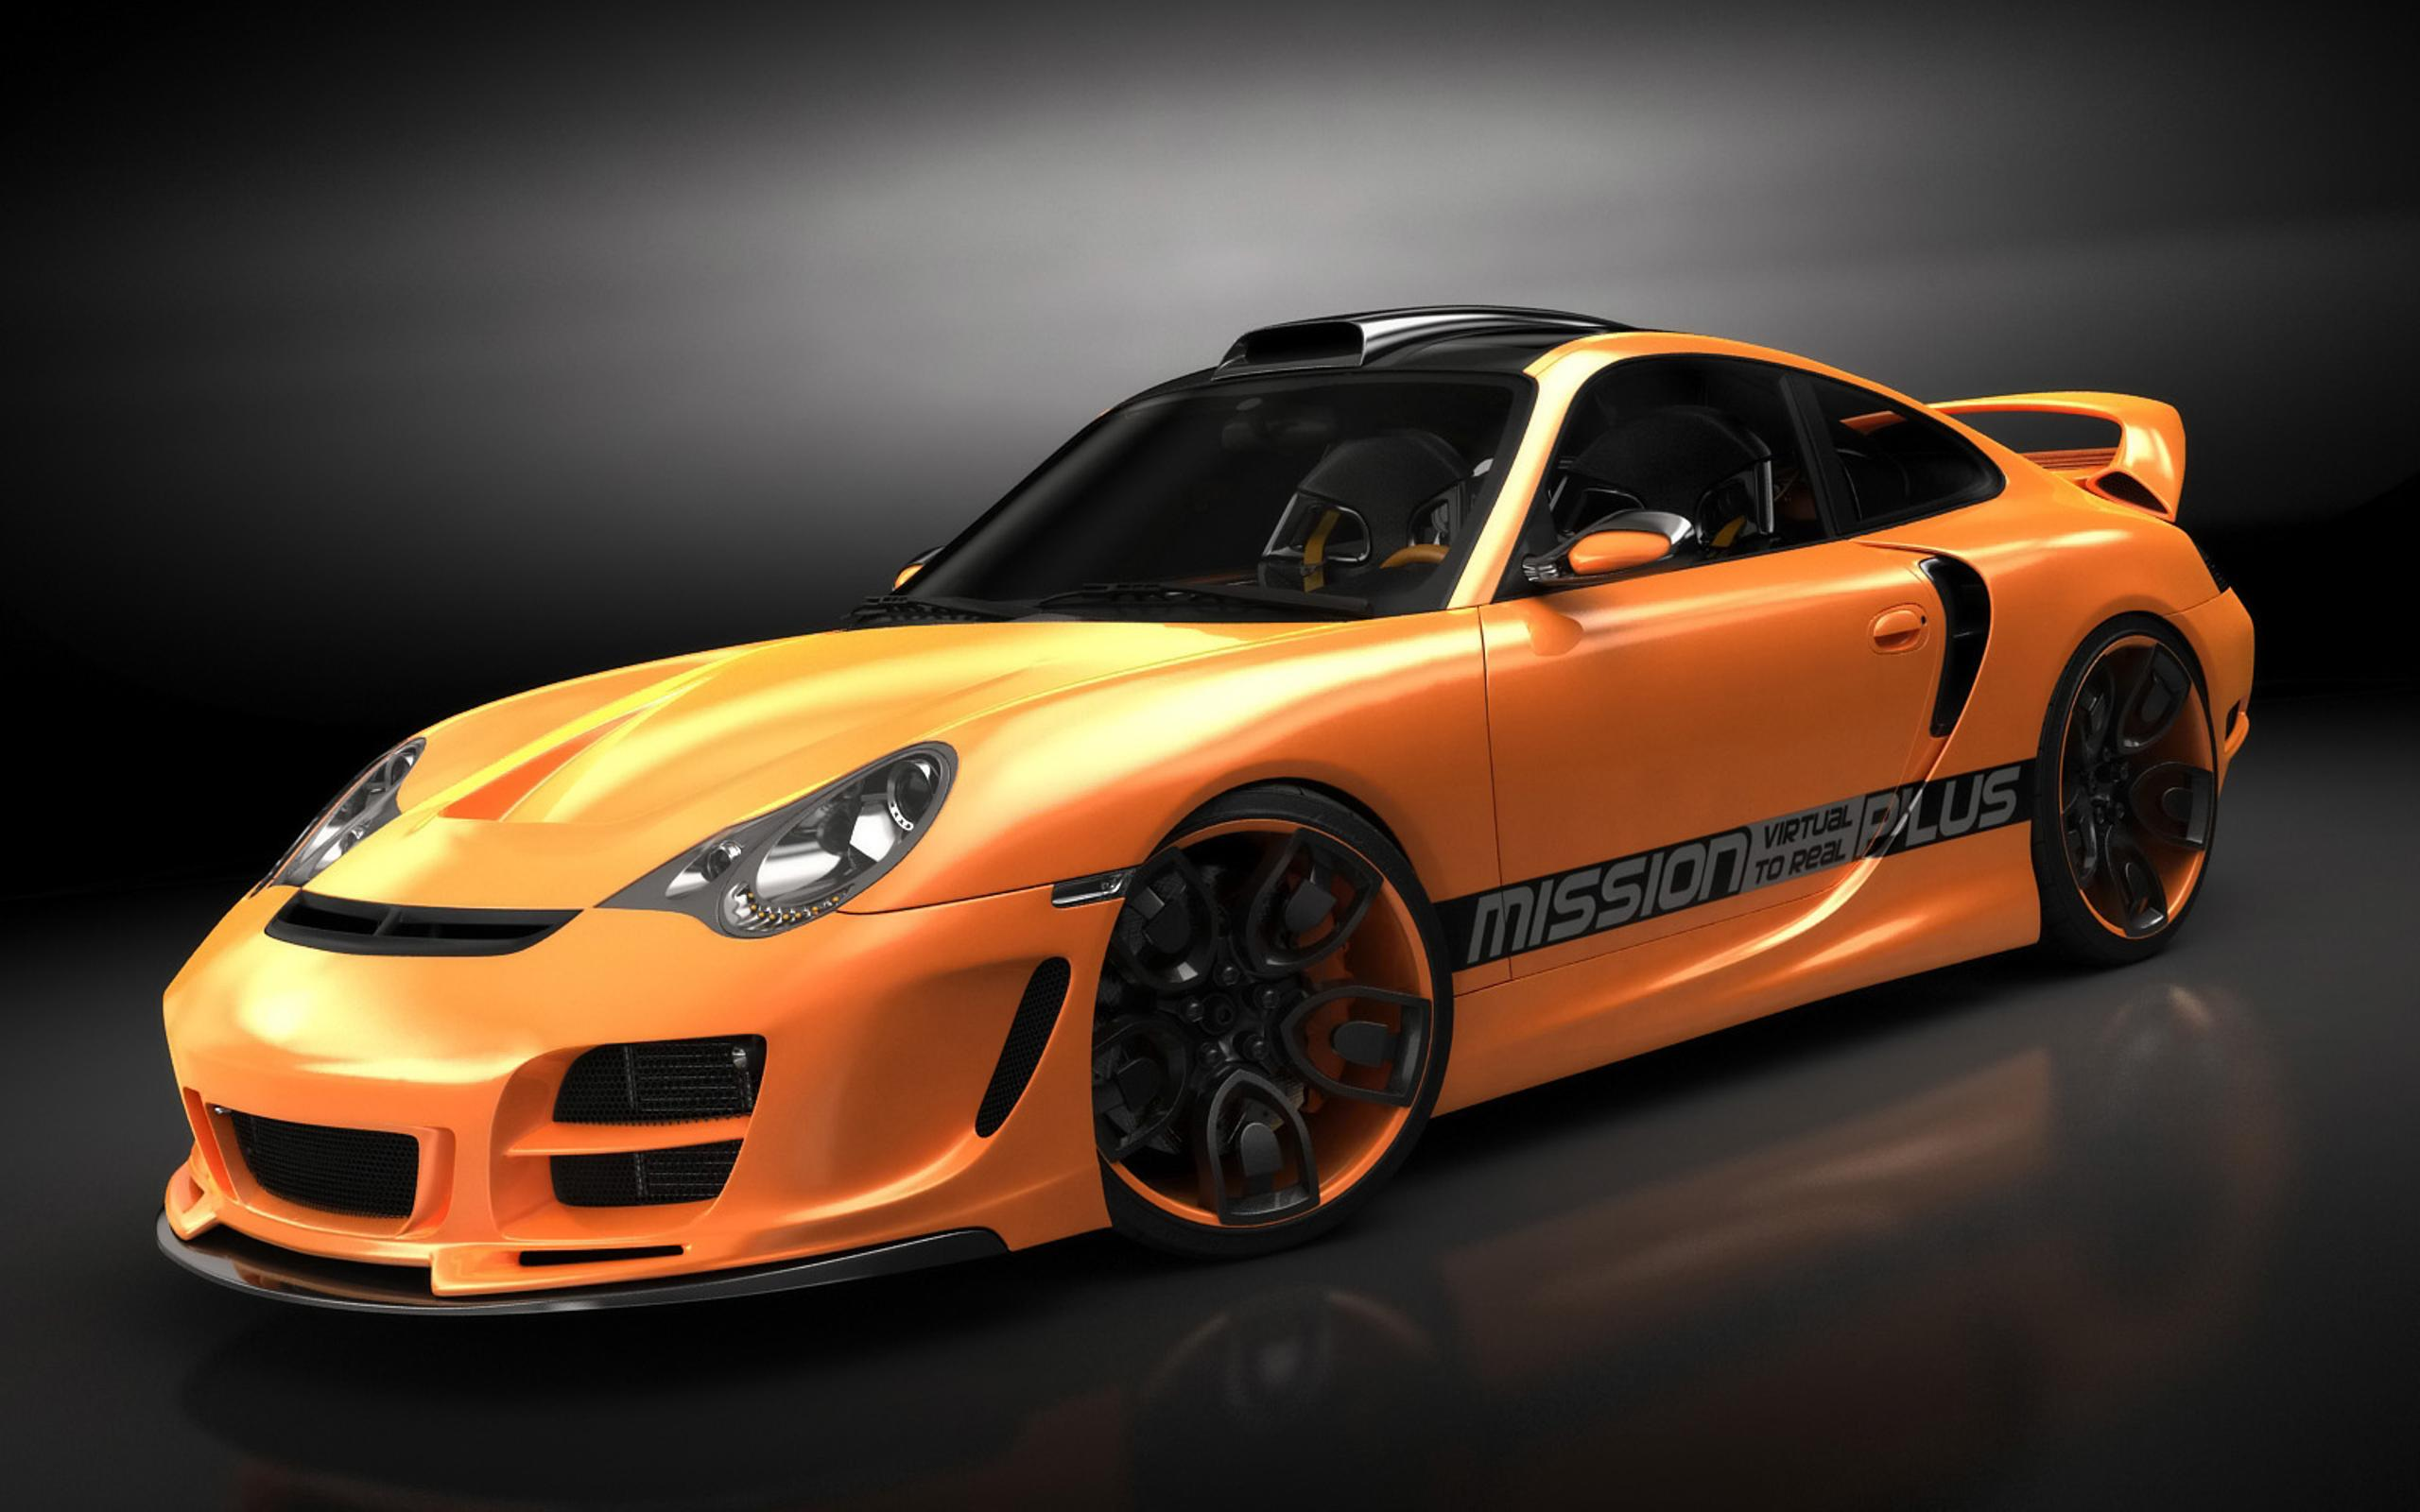 Orange Porsche 911 Sport Car Wallpaper Wallpaper Download 2560x1600